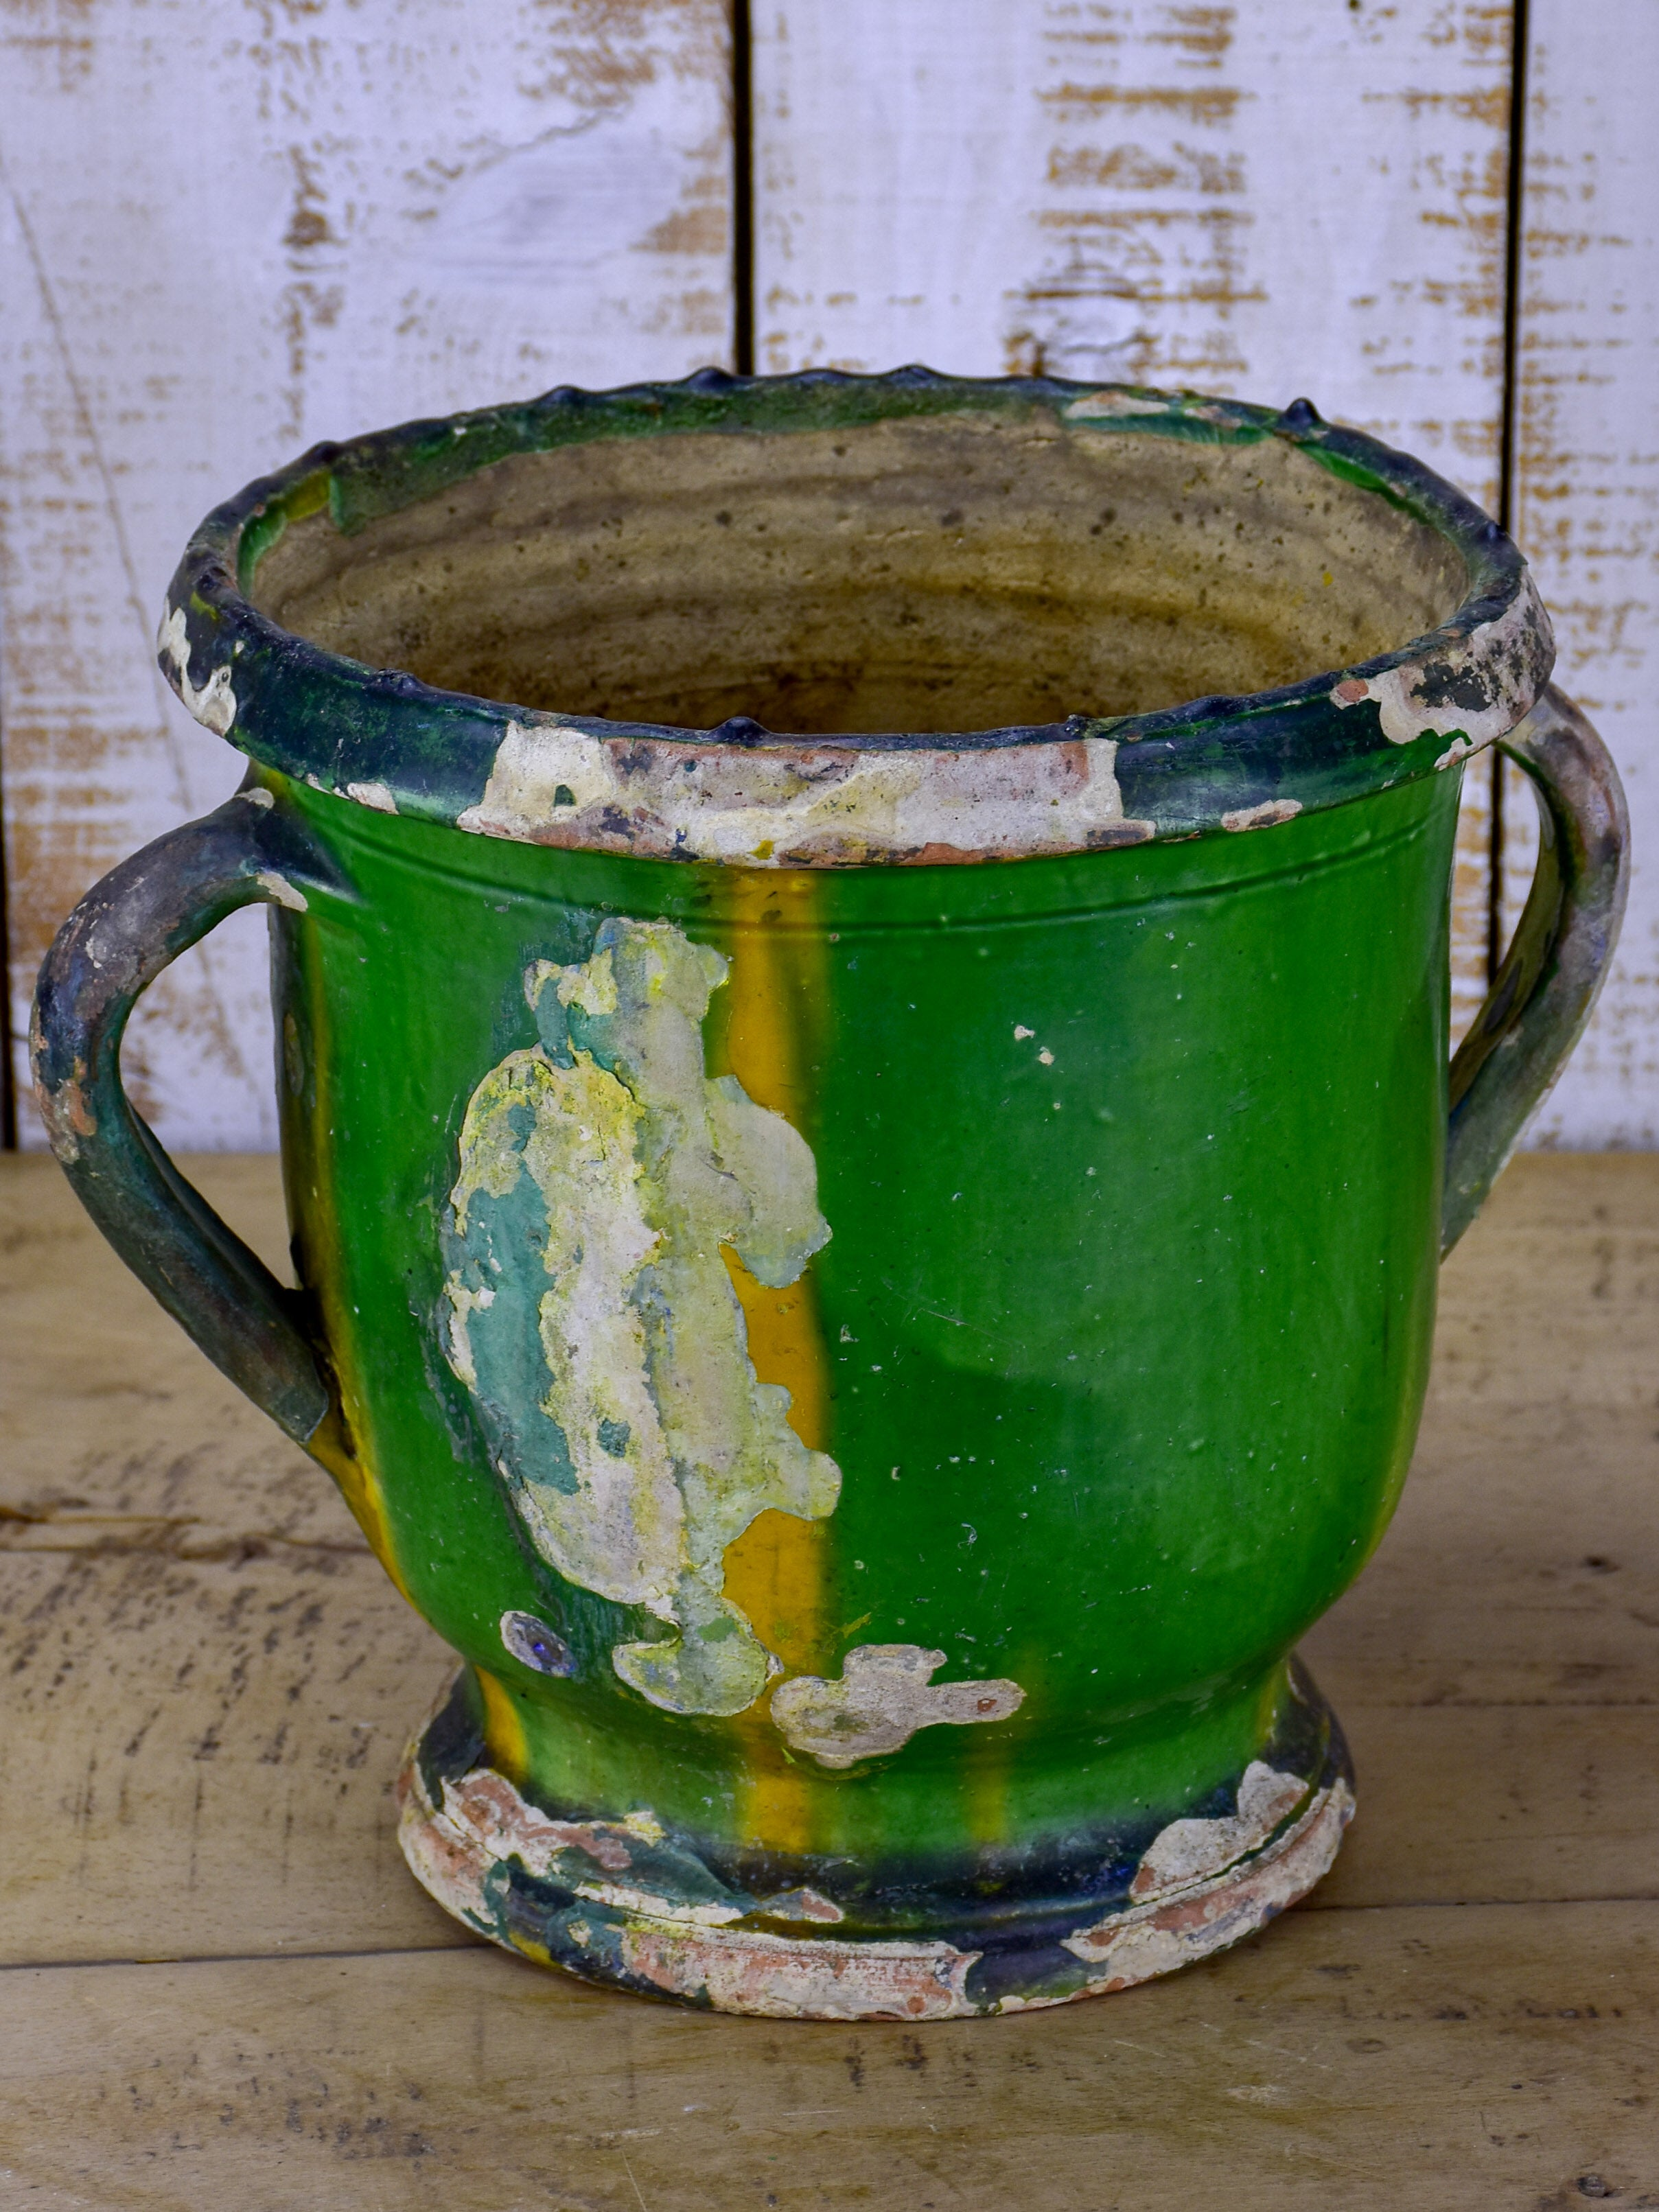 Antique French Castelnaudary garden planter with yellow and green glaze